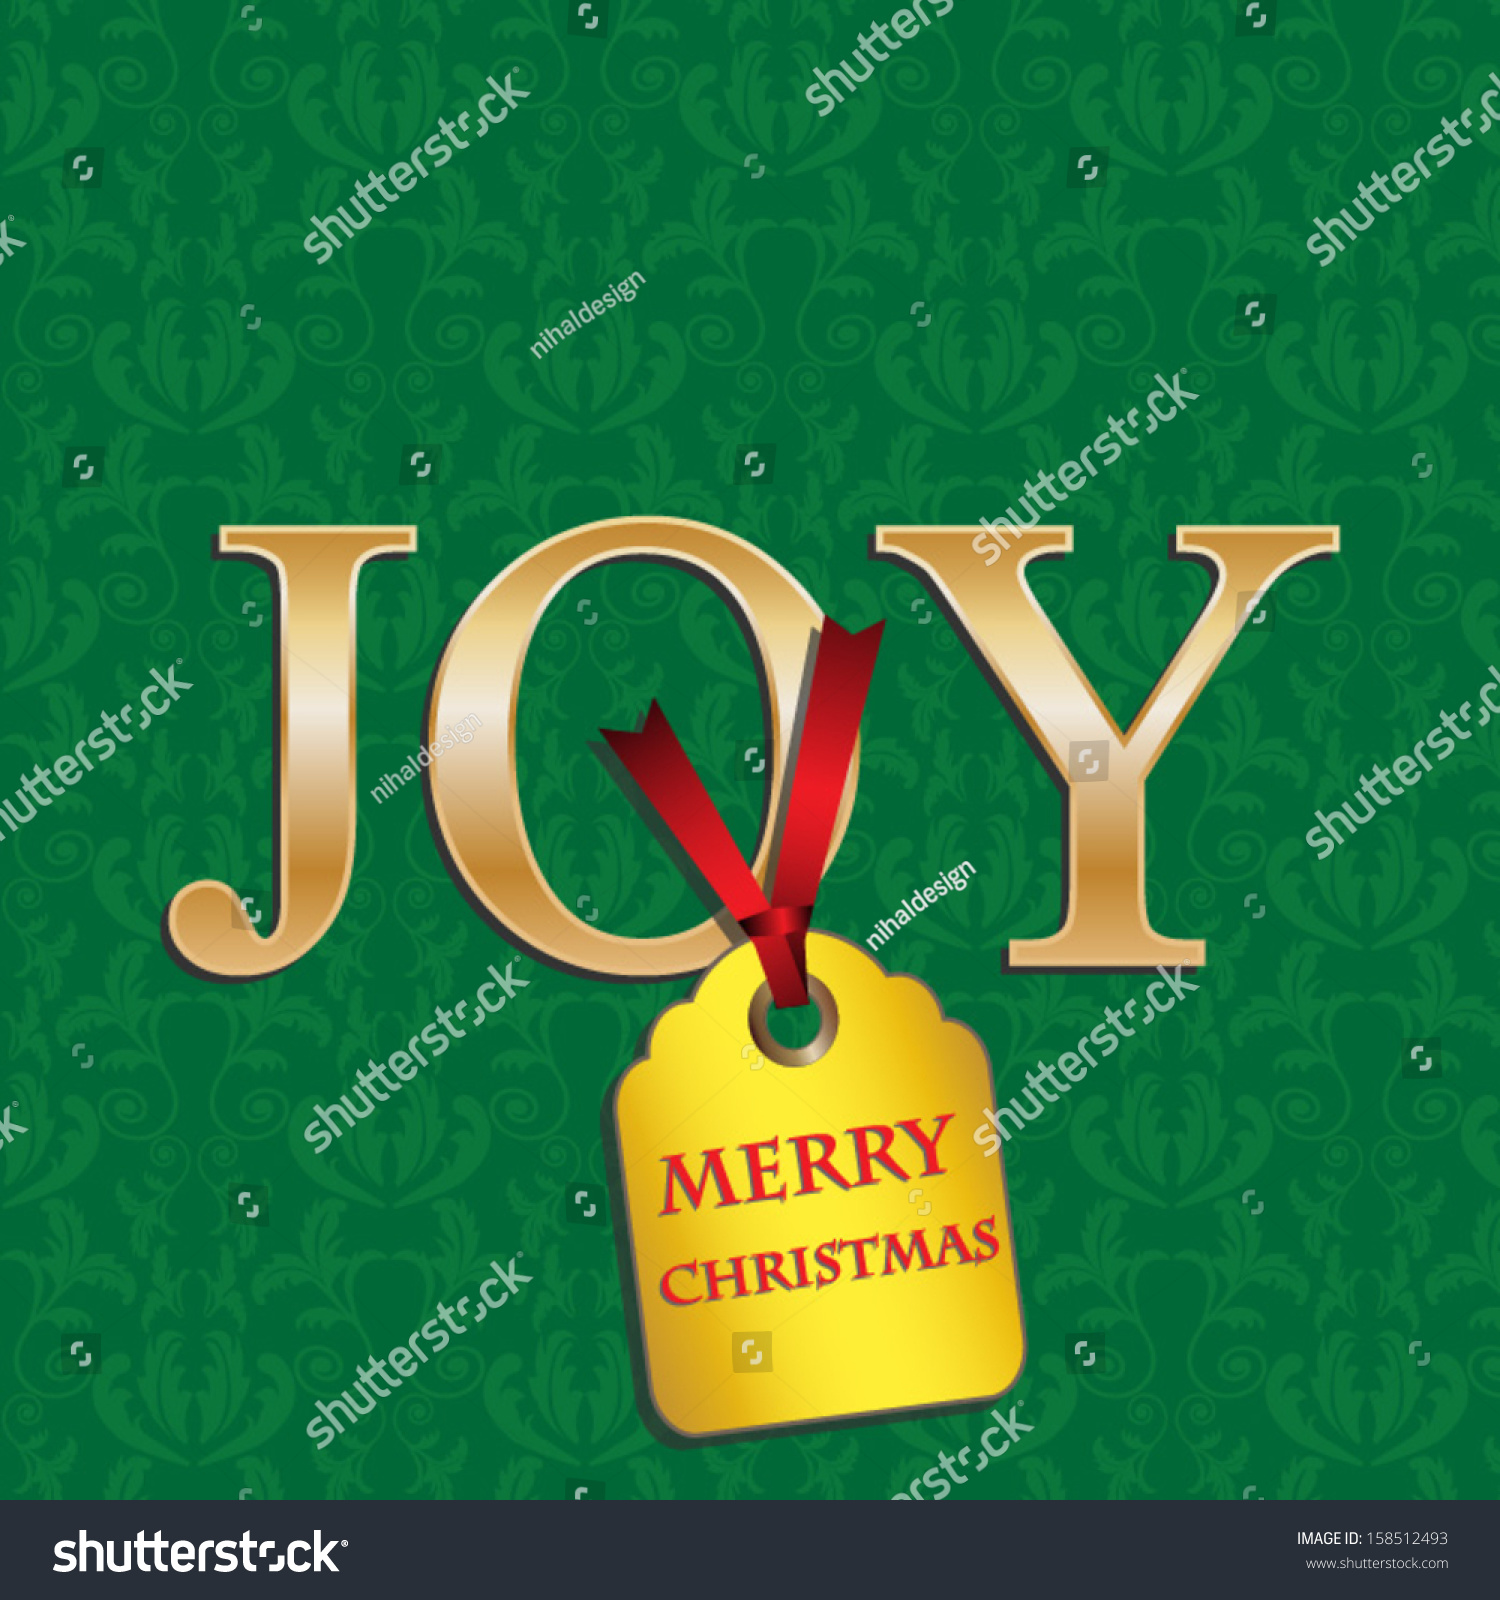 christmas cards with green damask and gold joyvector eps10illustration